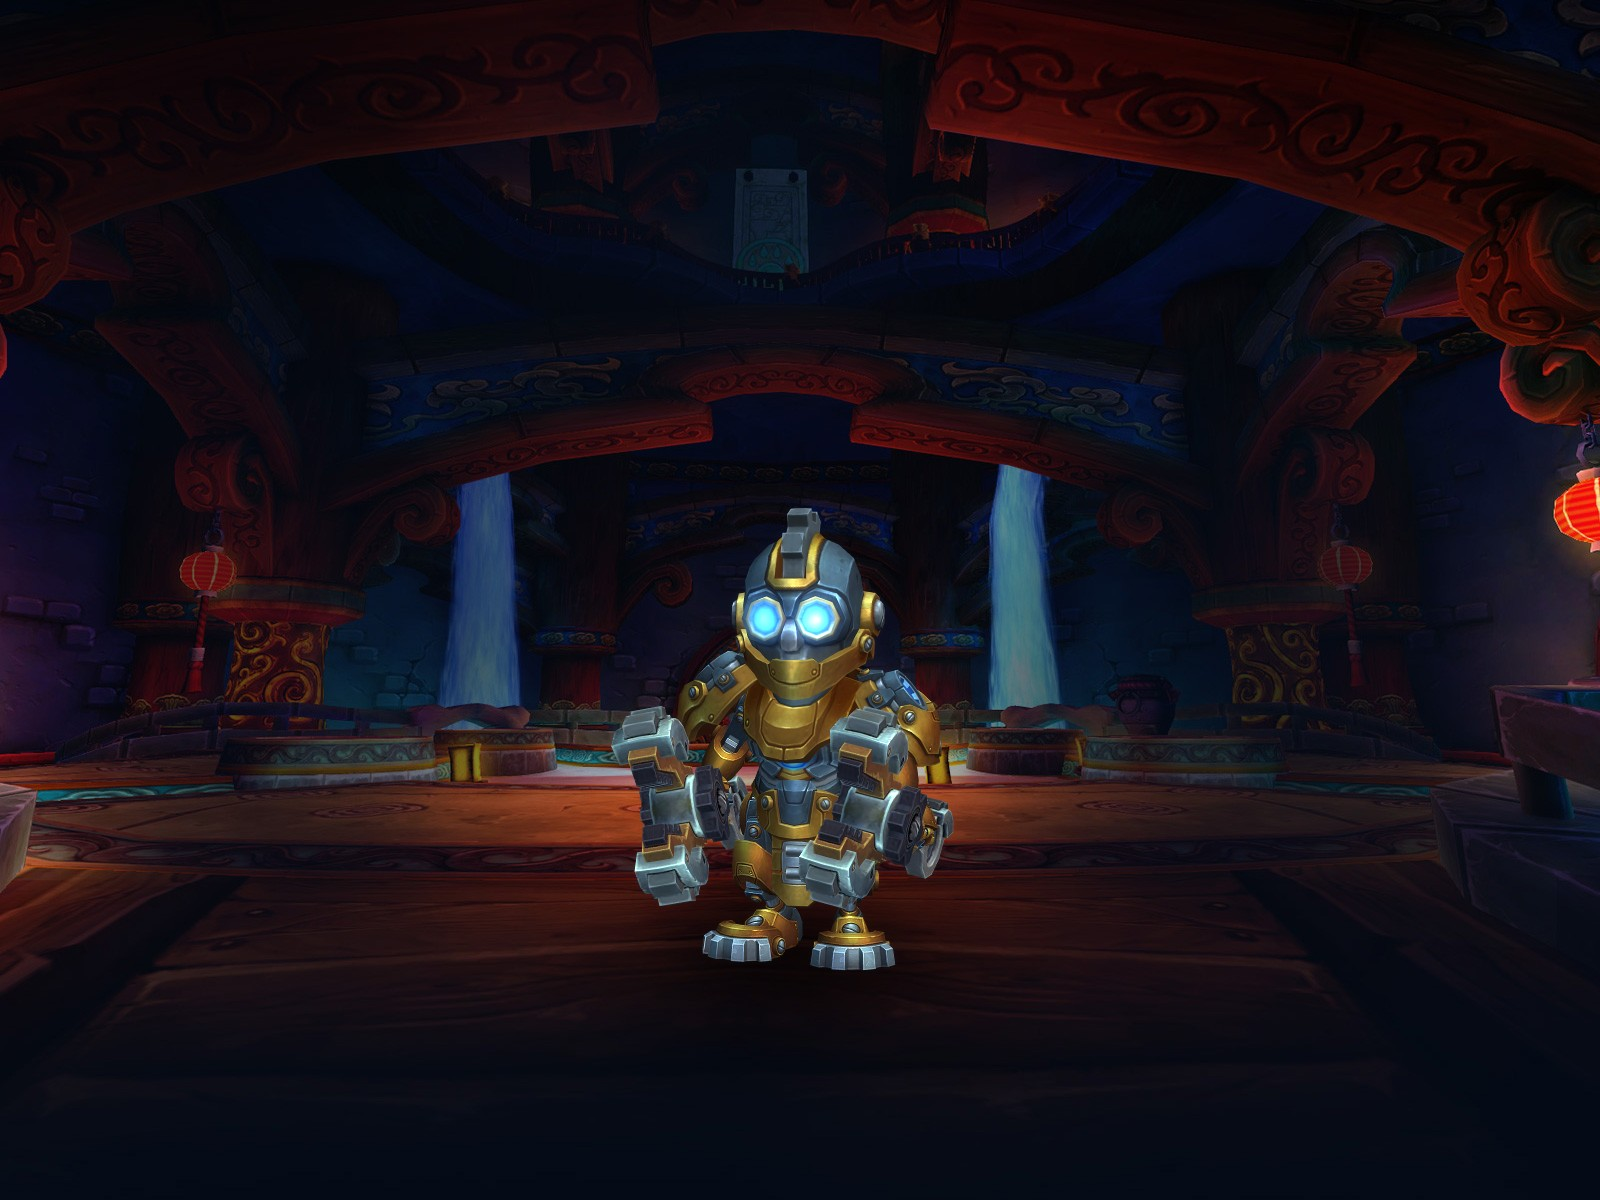 Show Off Your Monk Transmog! - General Discussion - World of